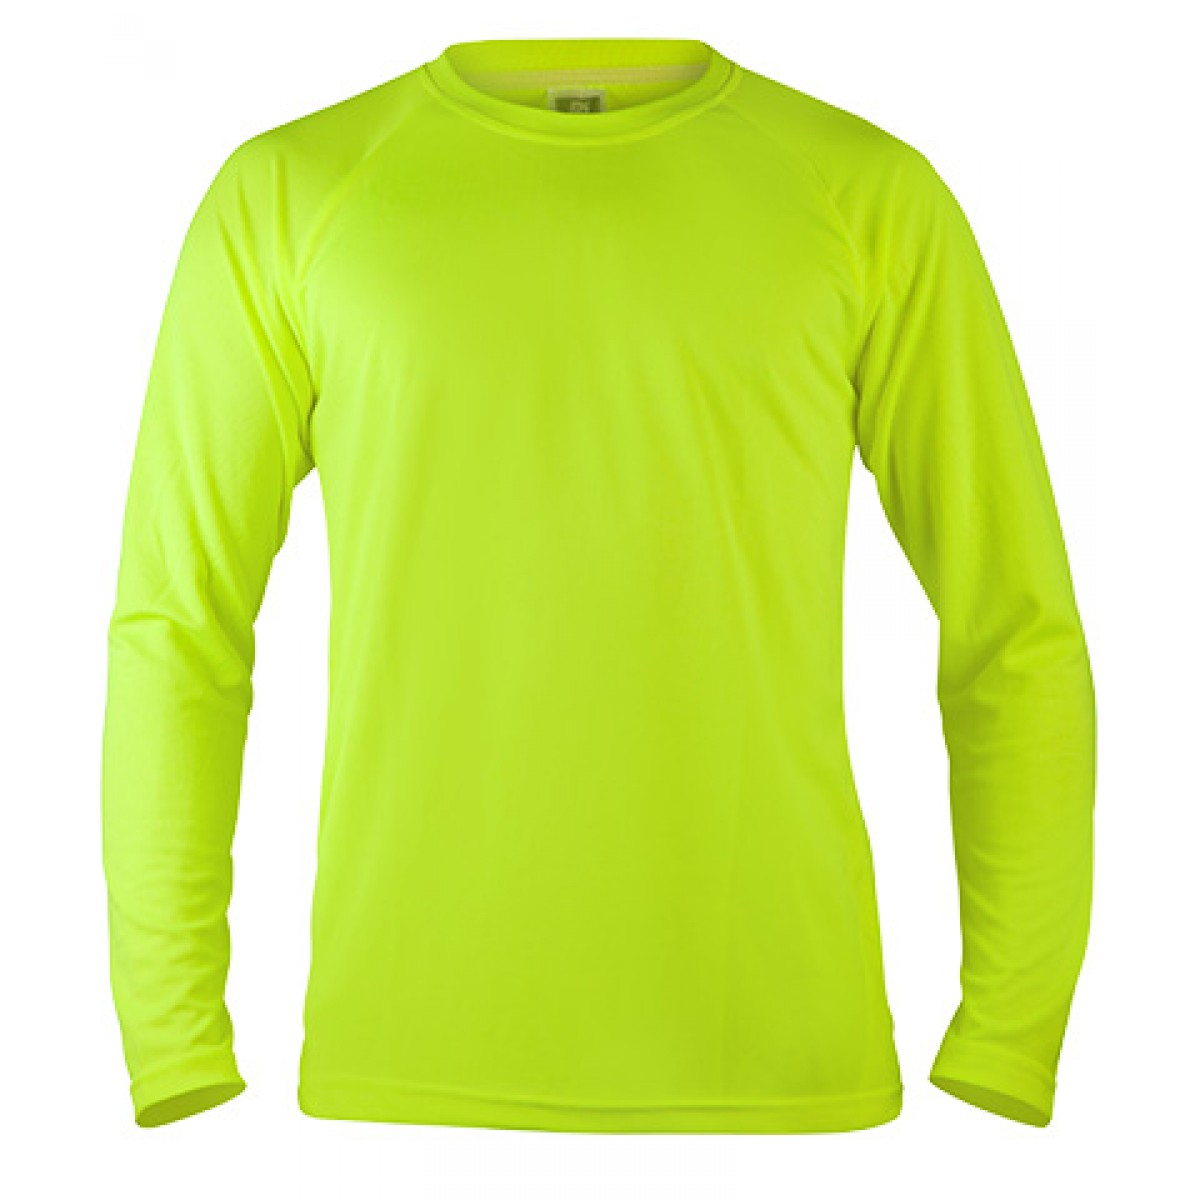 Long Sleeve Mesh Performance T-shirt-Neon Green-L